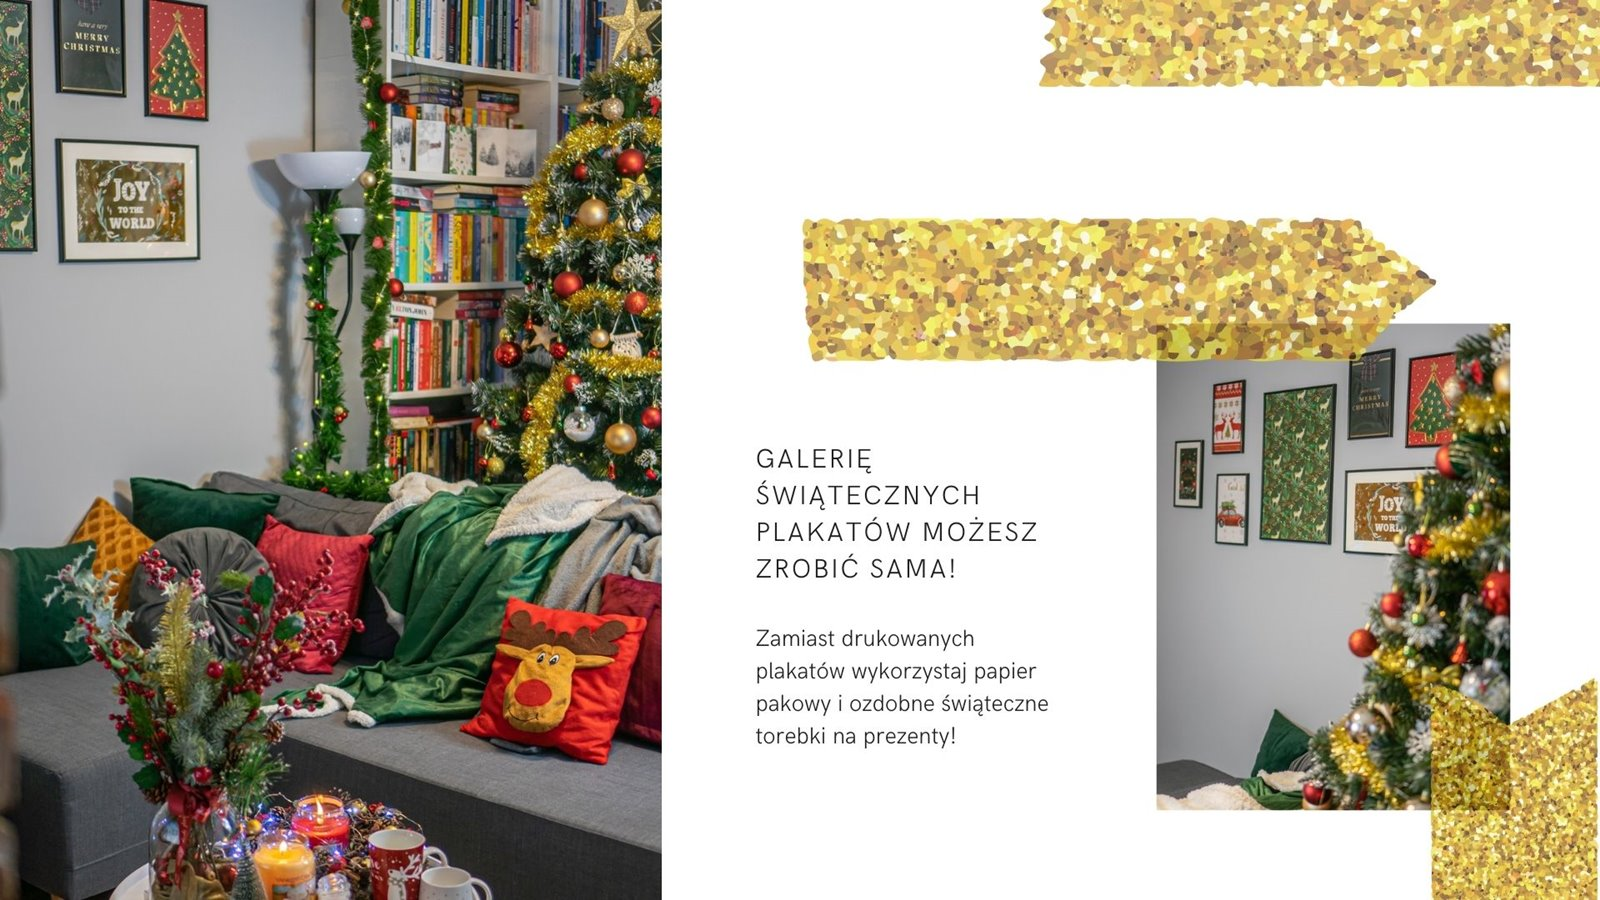 8 christmas posters gallery diy livingroom ideas christmastree inspiration ideas red gold czerwony złoty butelkowa zieleń dodatki